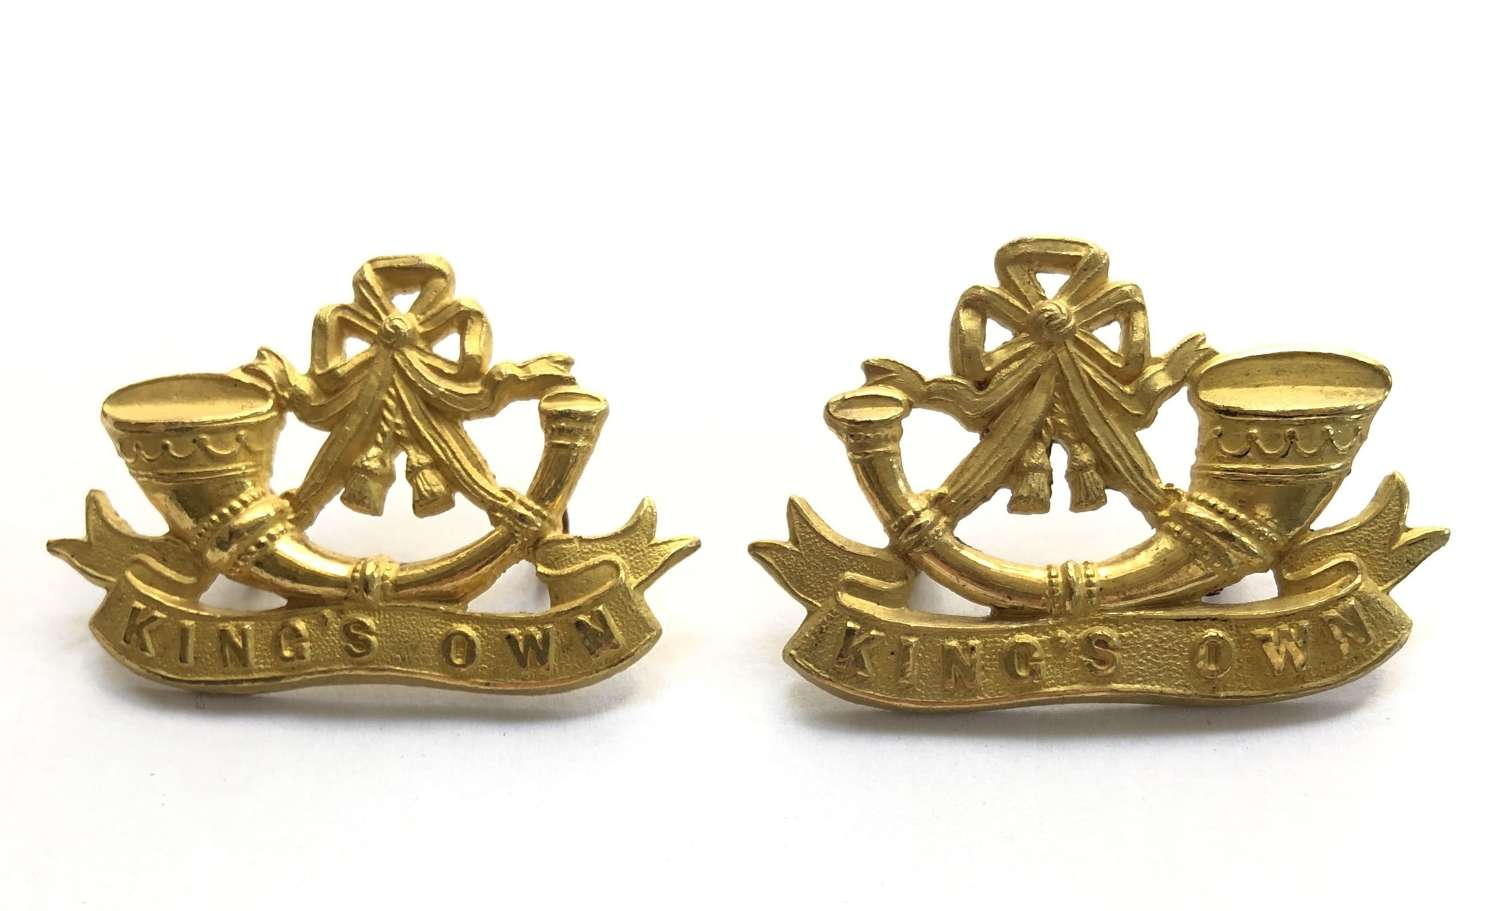 King's Shropshire Light Infantry post 1882 gilt collar badges